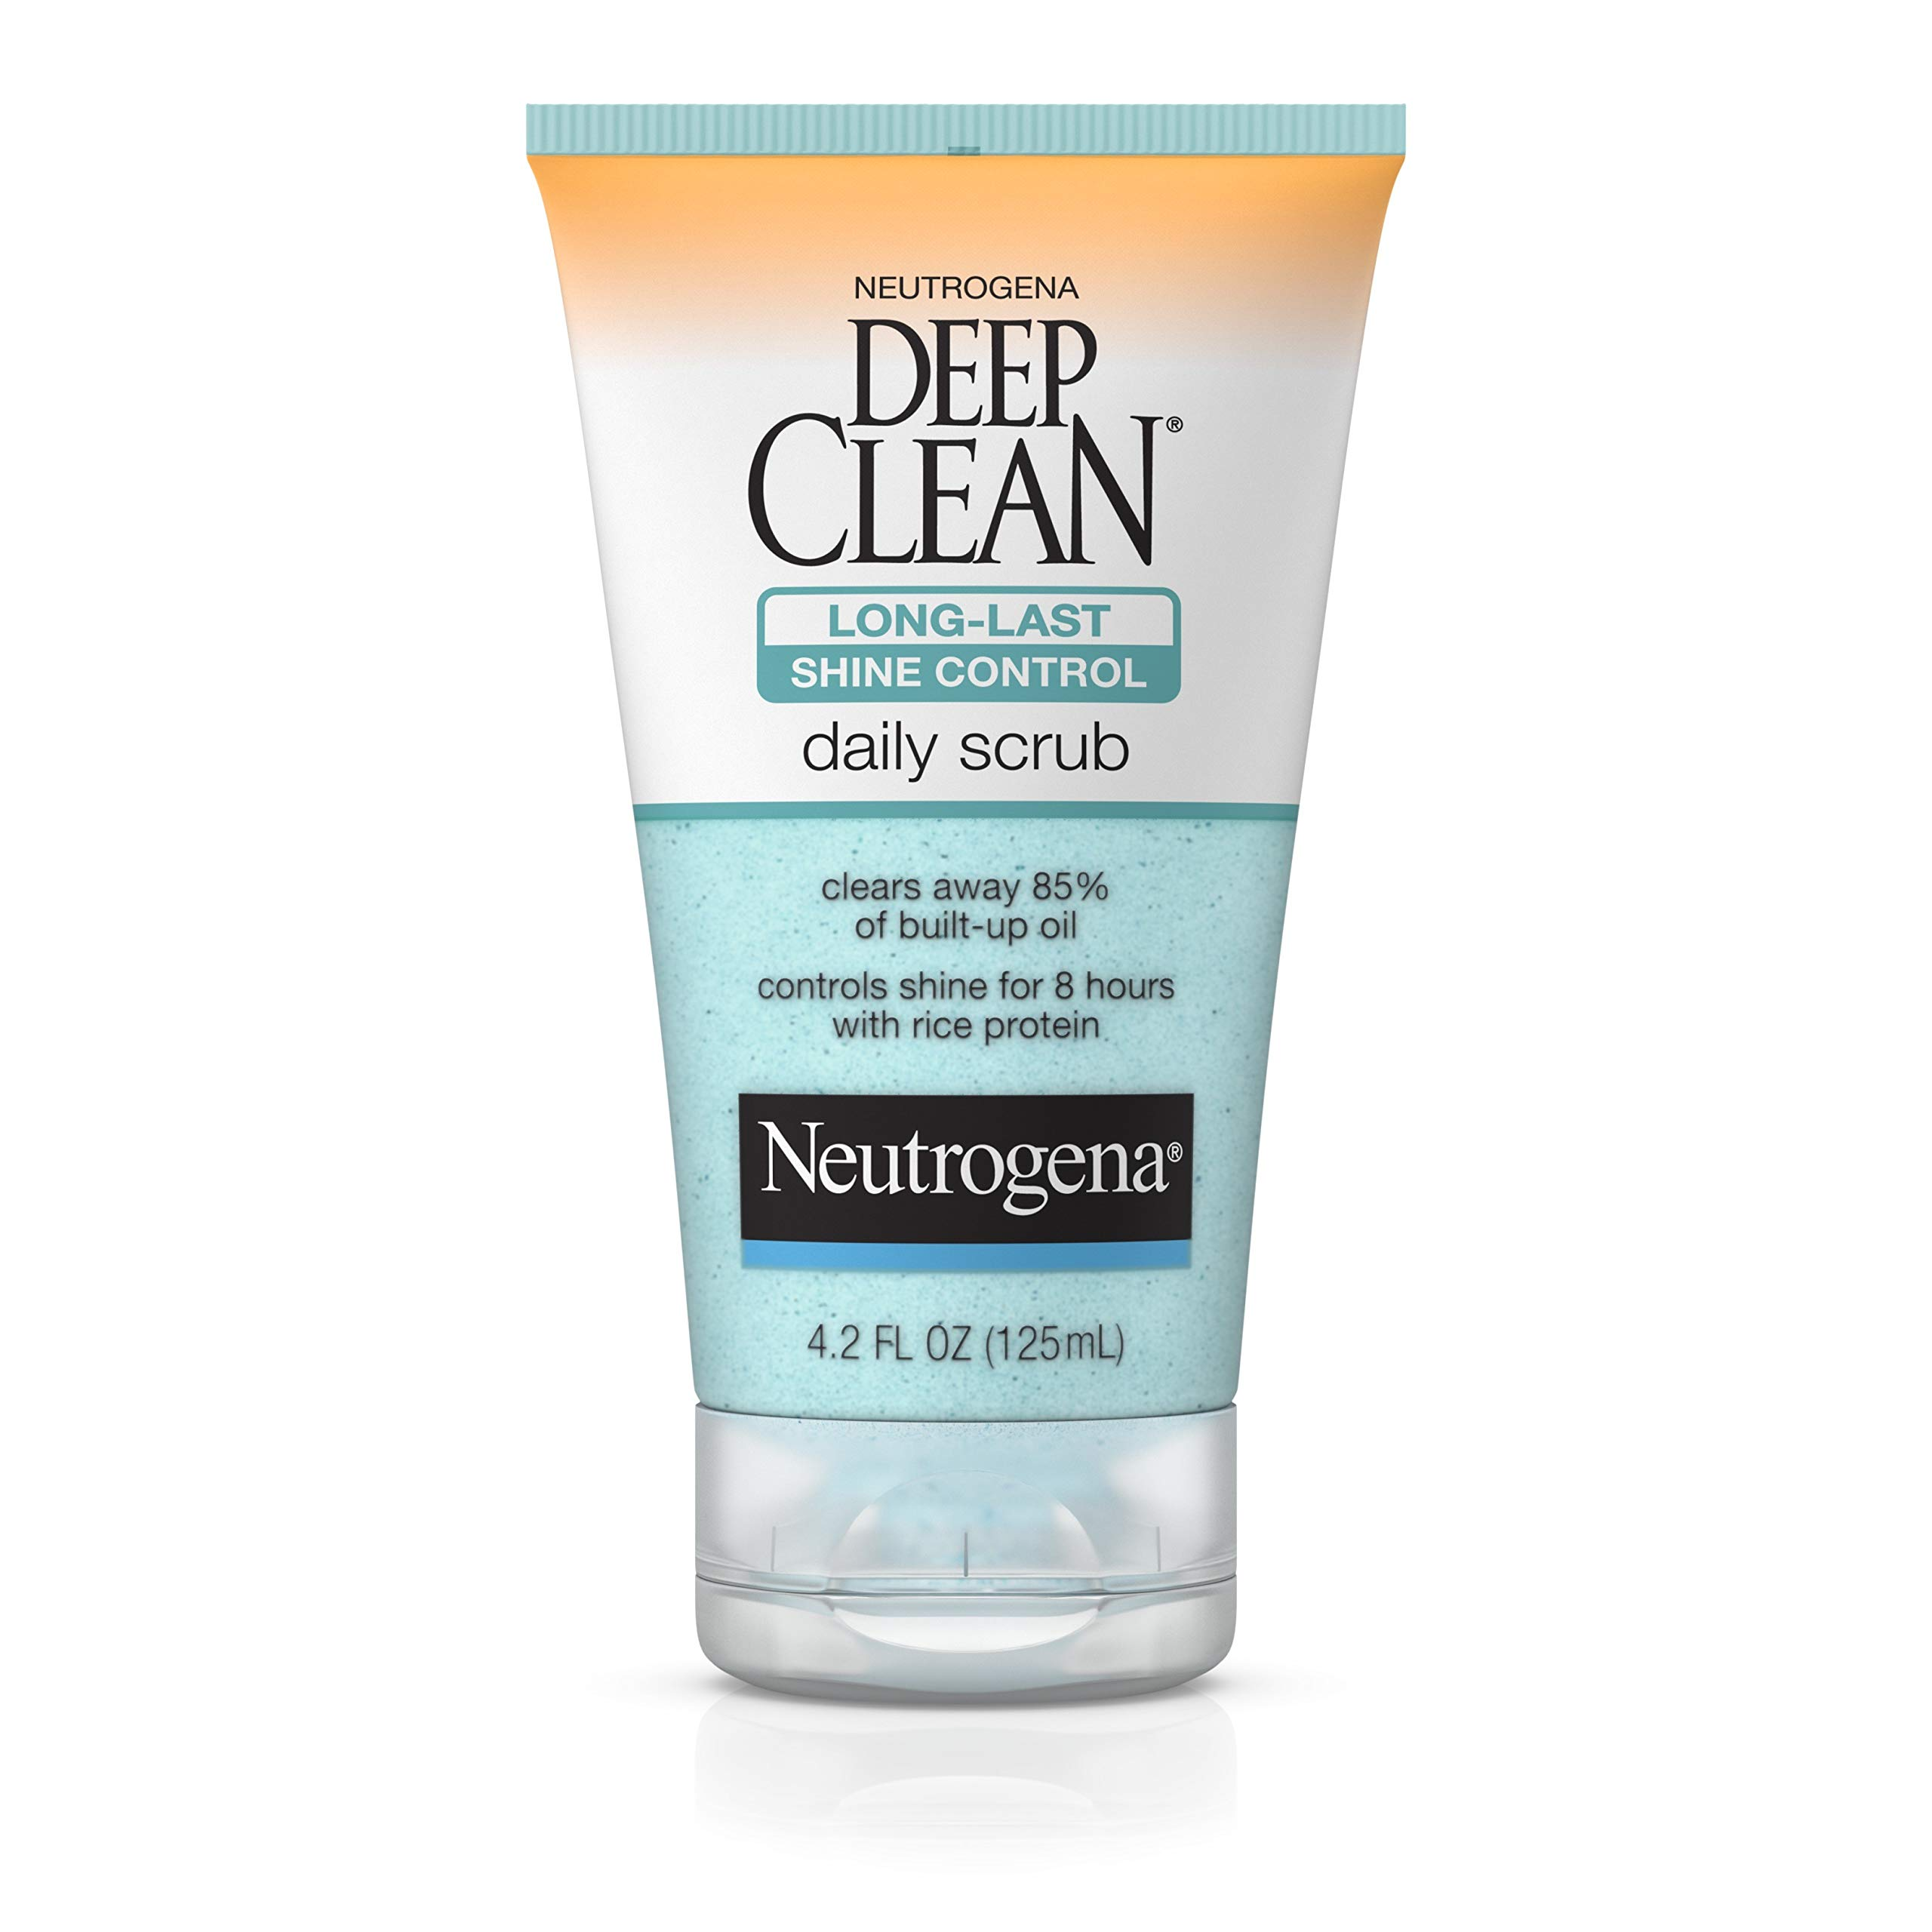 Neutrogena Deep Clean Long-Last Shine Control Daily Exfoliating Facial Scrub with Rice Protein to Combat Oil and Control Shine, Oil-Free, 4.2 fl. oz by Neutrogena